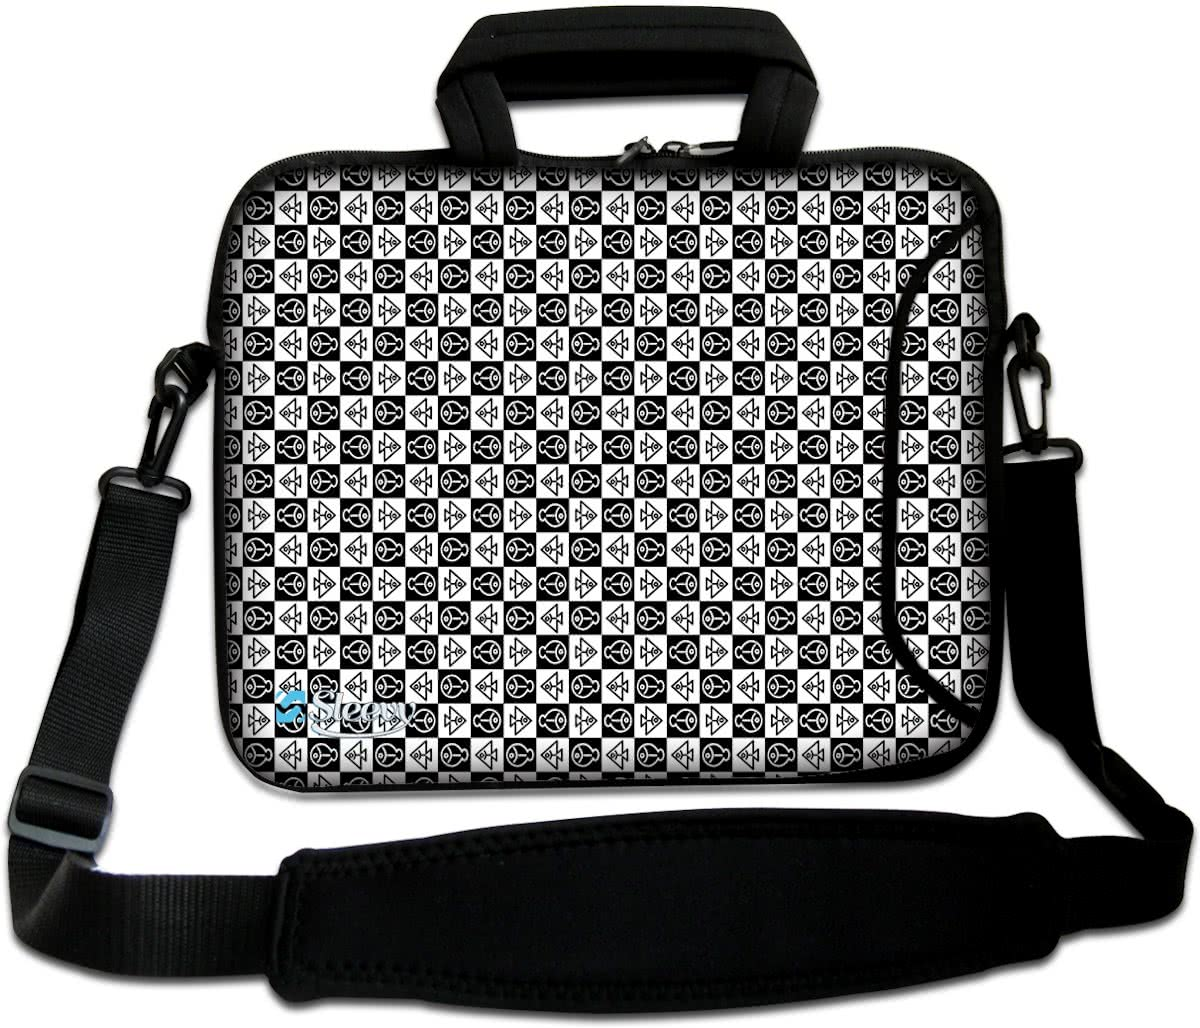 Sleevy 15,6  laptoptas symbolen